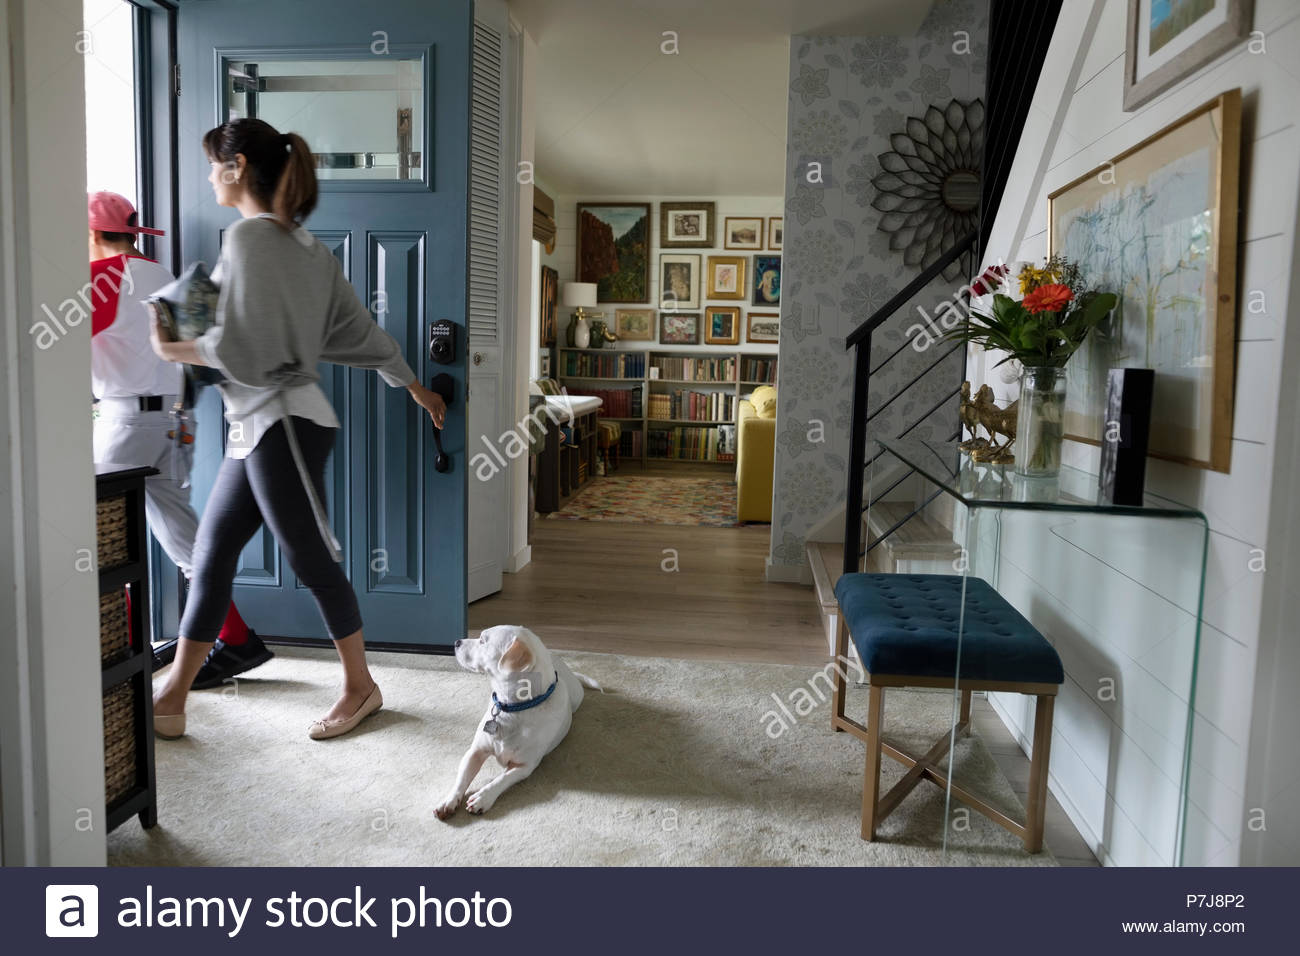 Dog watching mother and son leaving for baseball practice at front door - Stock Image